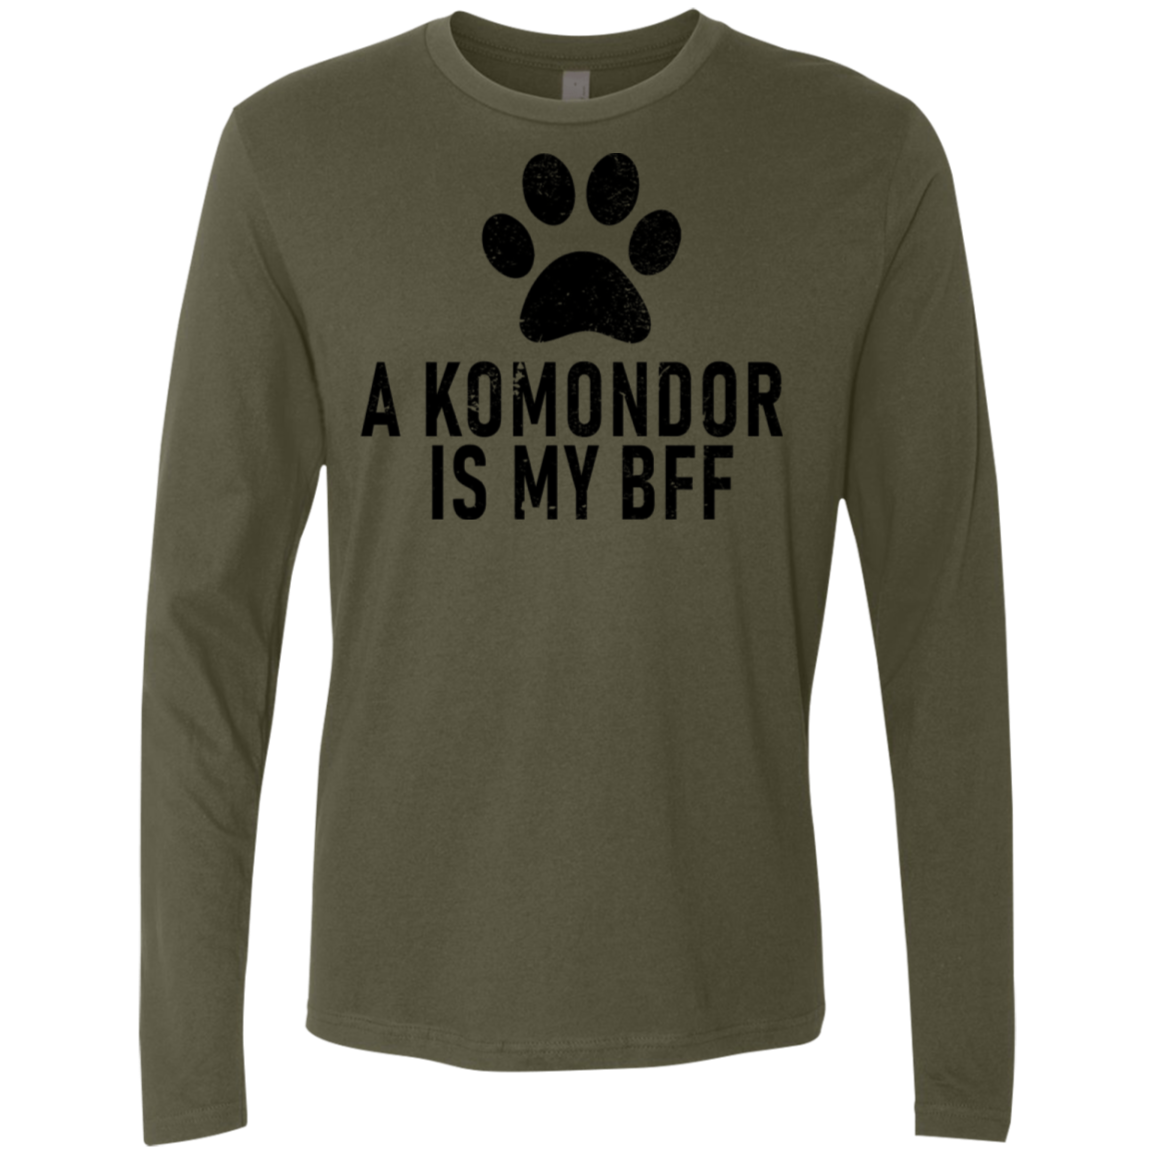 A Komondor Is My Bff Men's Long Sleeve Tee